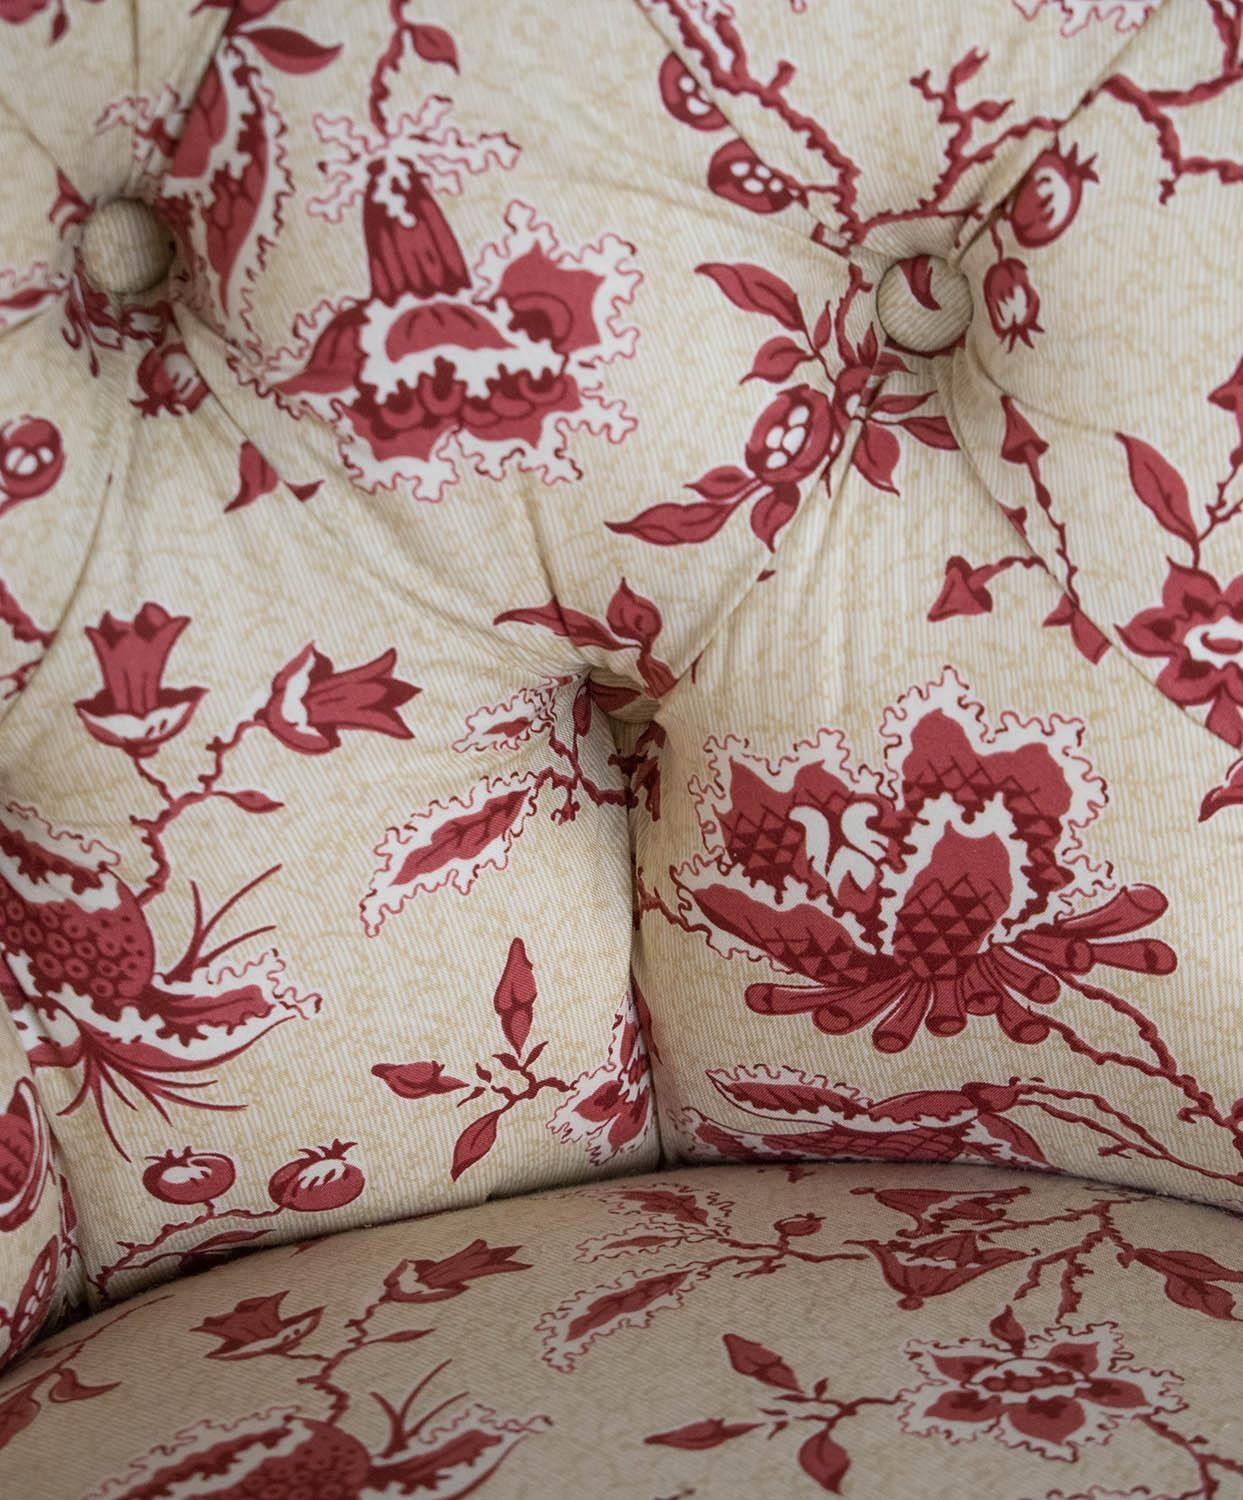 BERGERE, Napoleon III mahogany in cream and red foliate patterned upholstery, 75cm H x 61cm x 73cm. - Image 2 of 3